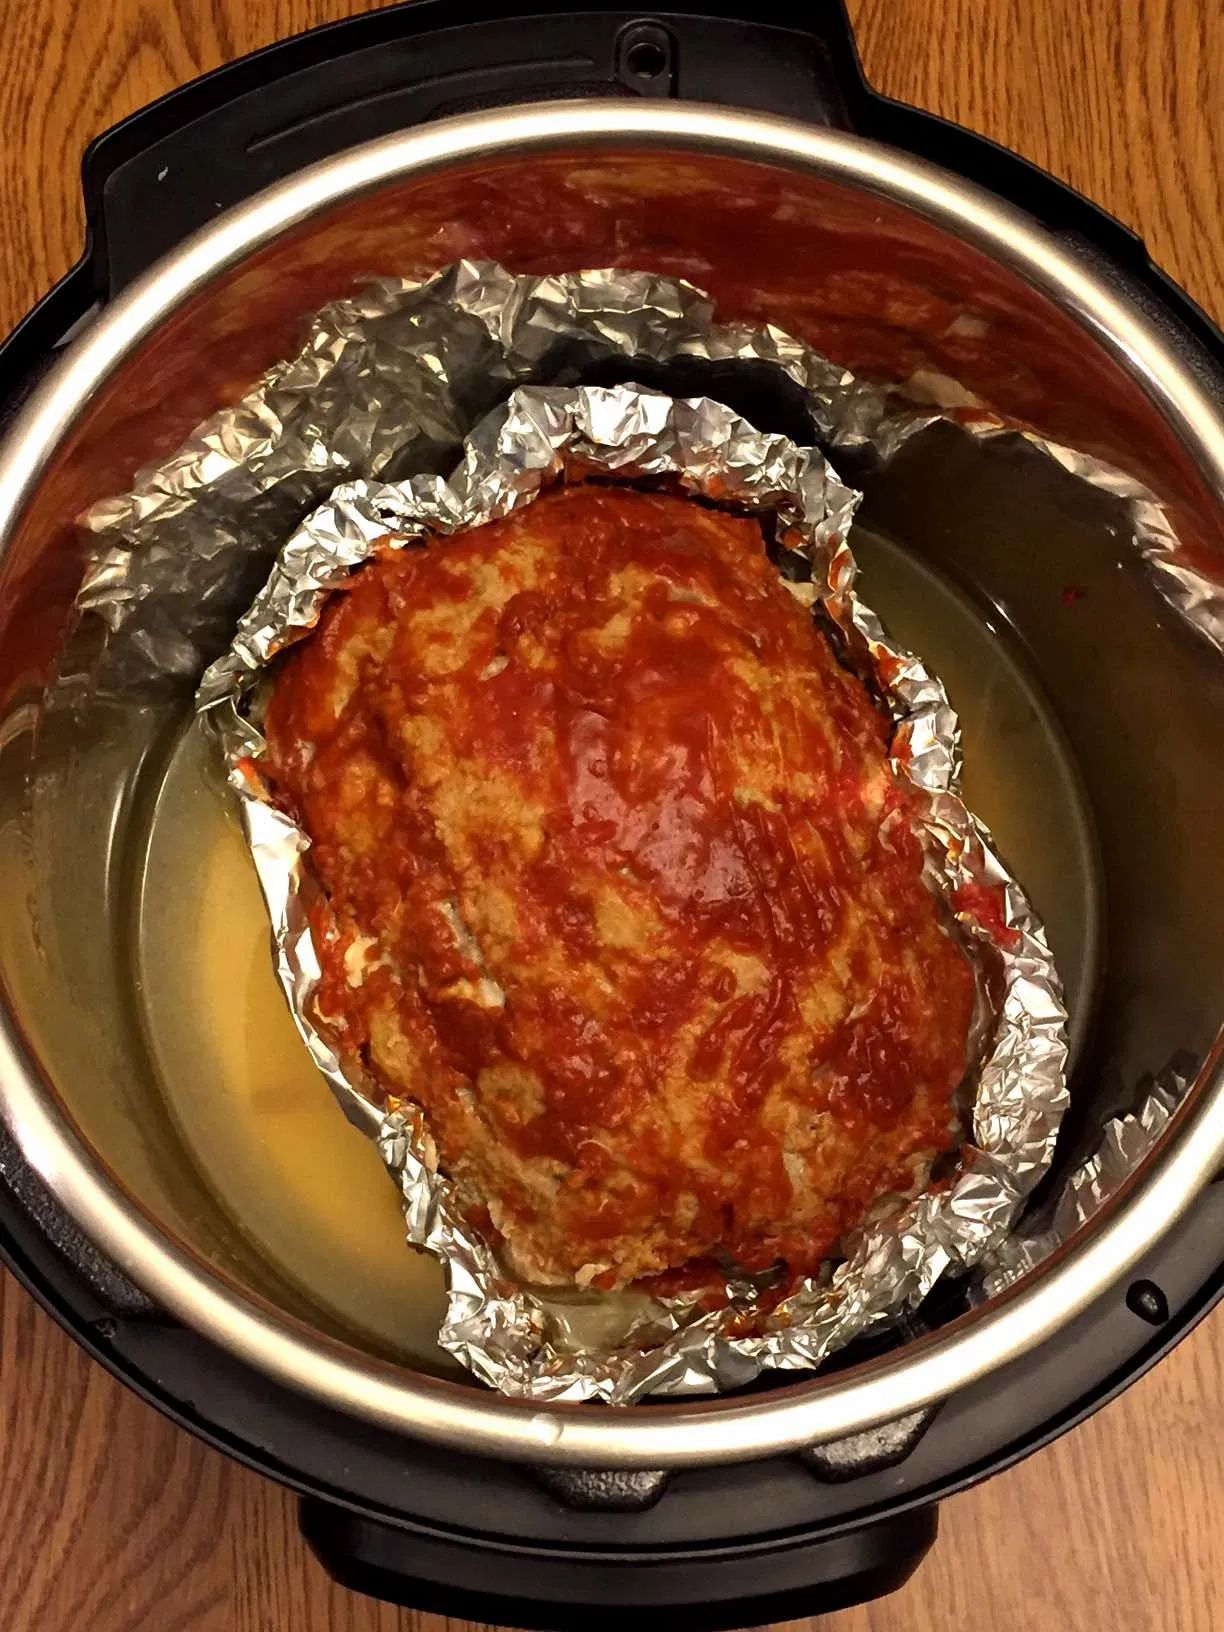 Instant Pot Meatloaf How To Cook Meatloaf In A Pressure Cooker Recipe How To Cook Meatloaf Instant Pot Recipes Instant Pot Dinner Recipes